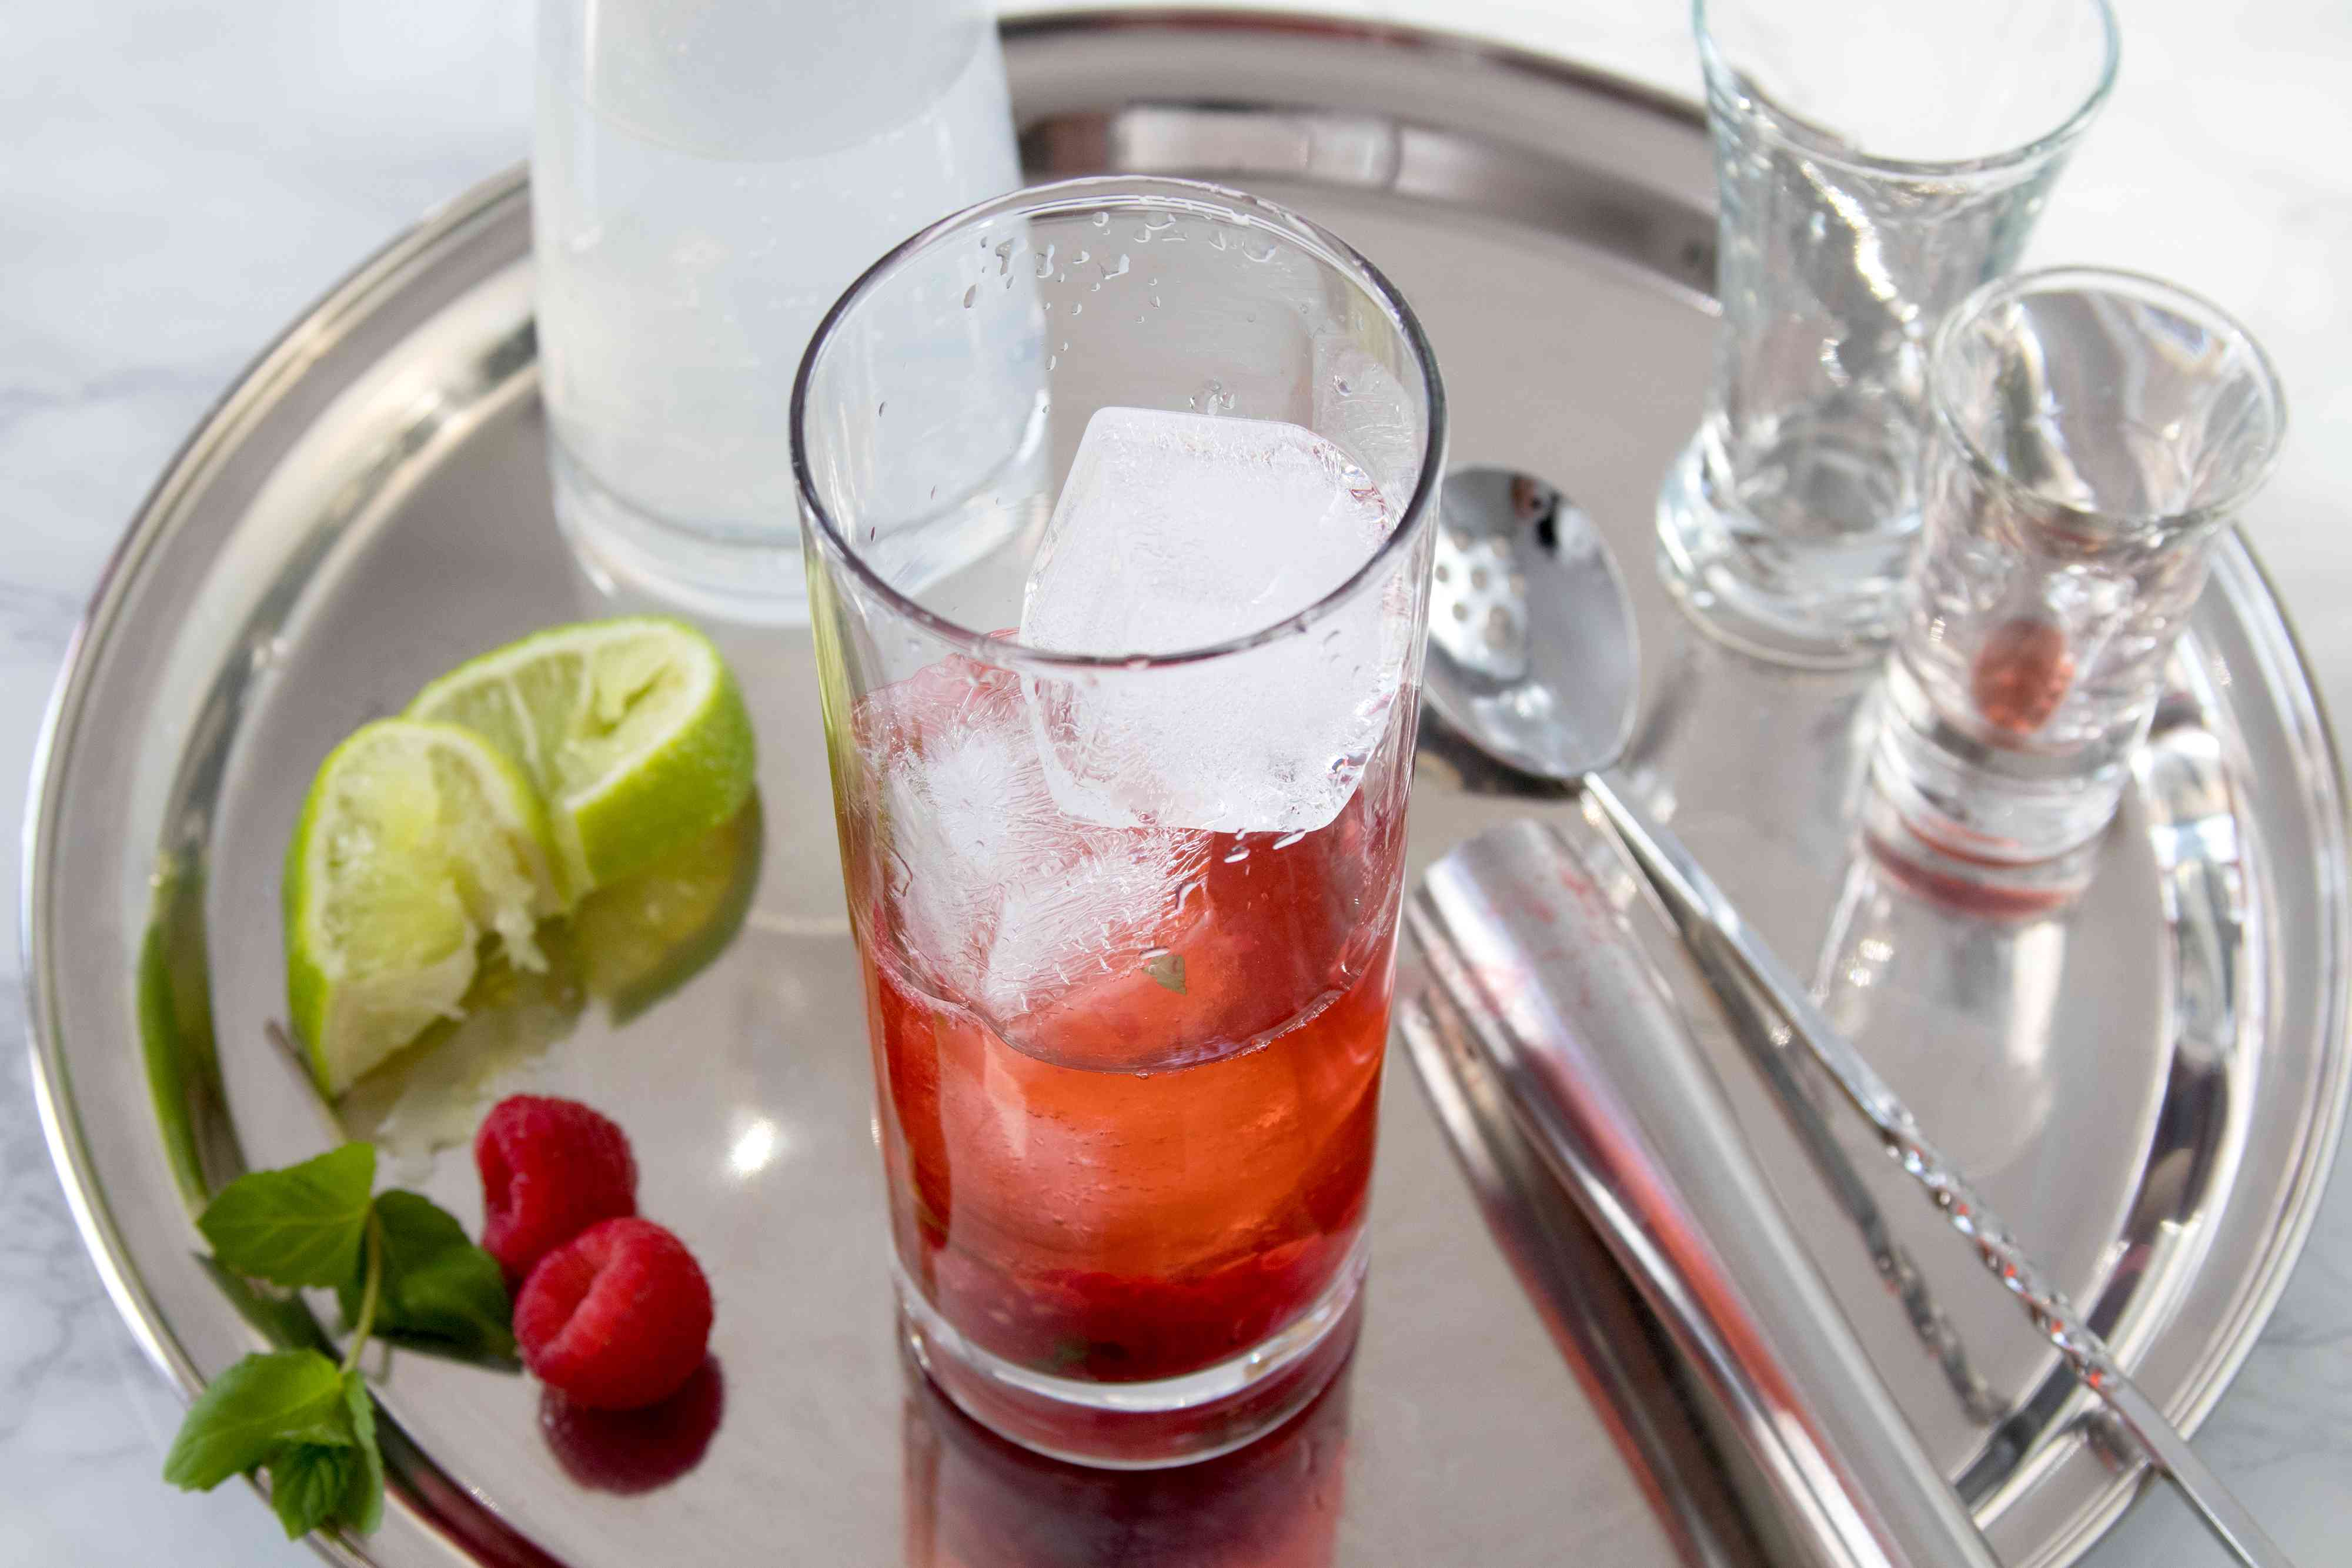 Rum and raspberry liqueur added to the glass